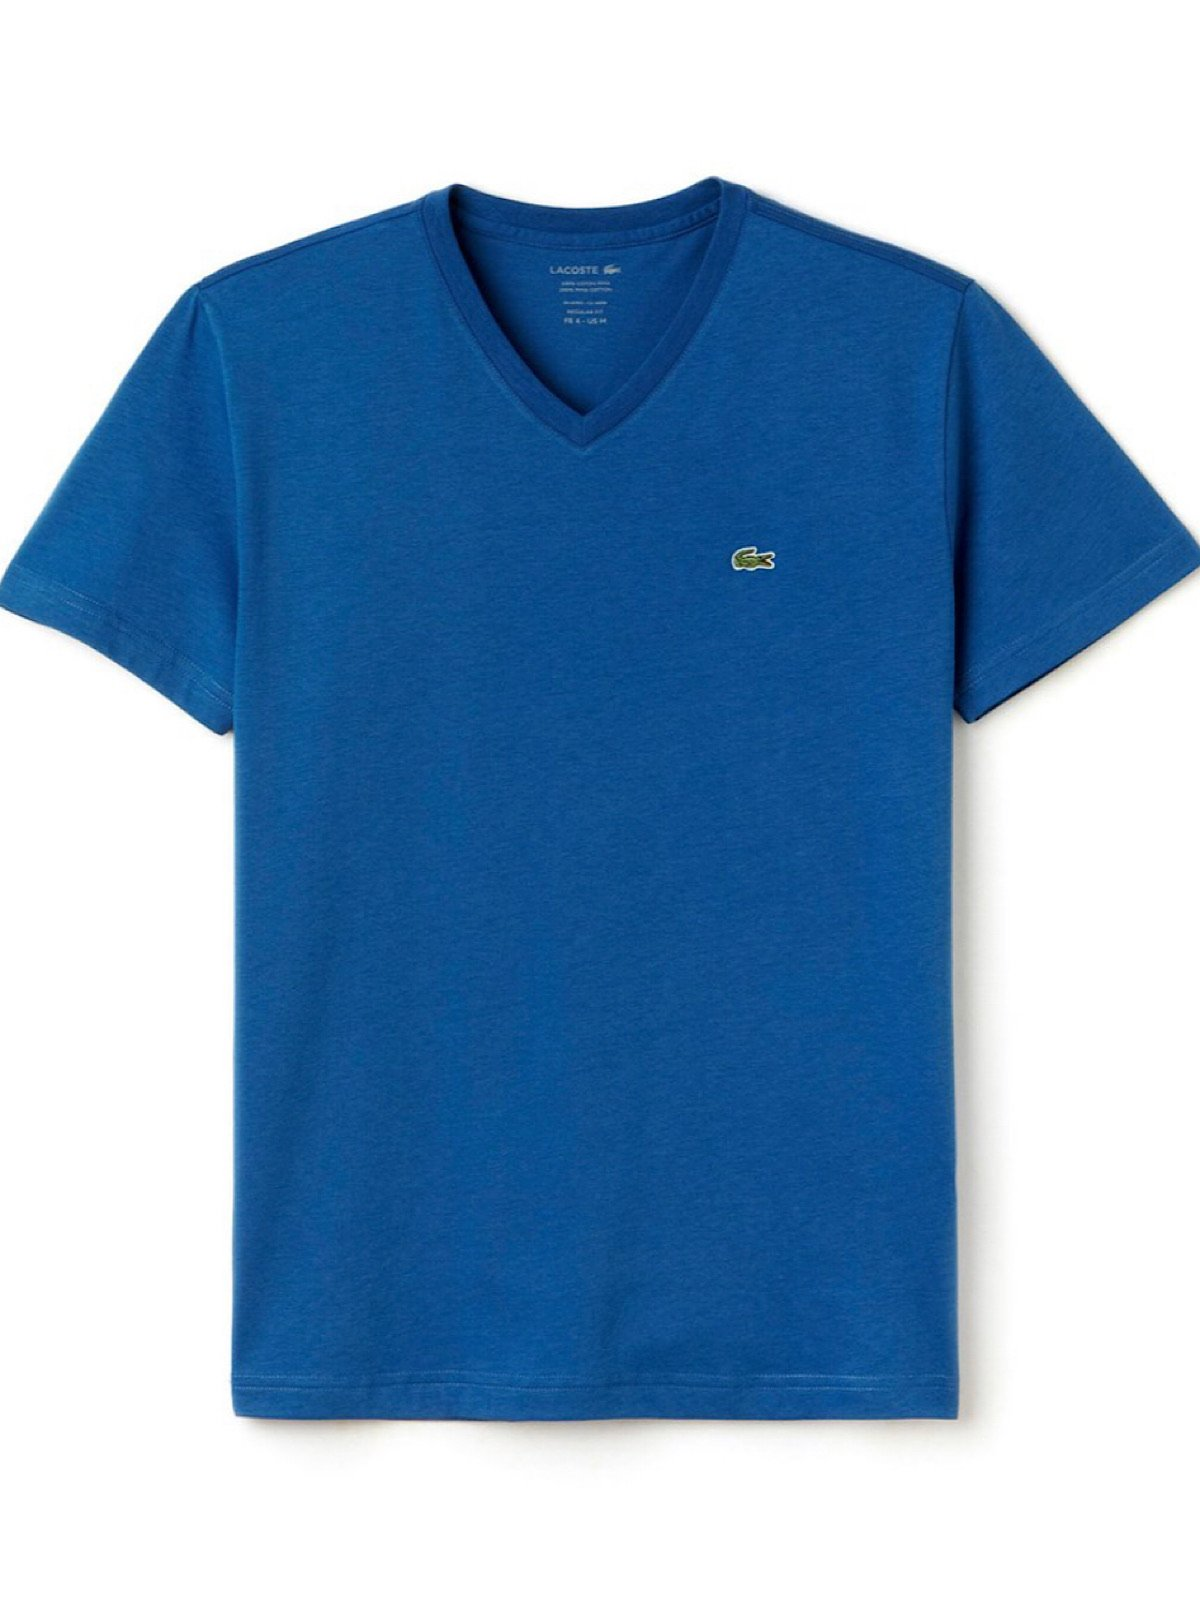 Lacoste T-Shirt - Ocean Blue - TH6710